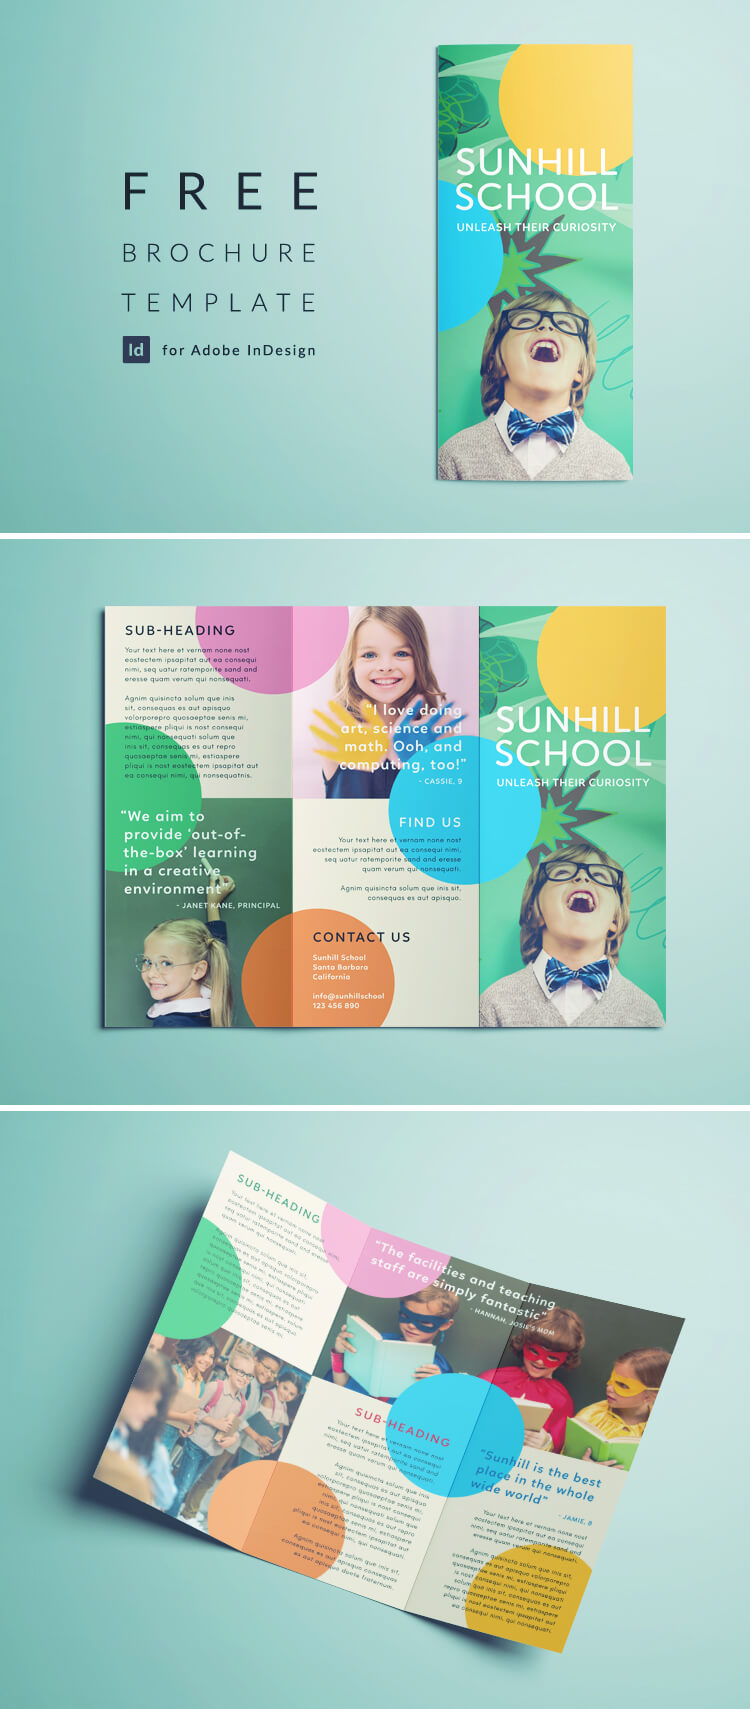 Free School Brochure Template - Tri-fold Colorful Brochure Template for InDesign - Free Download